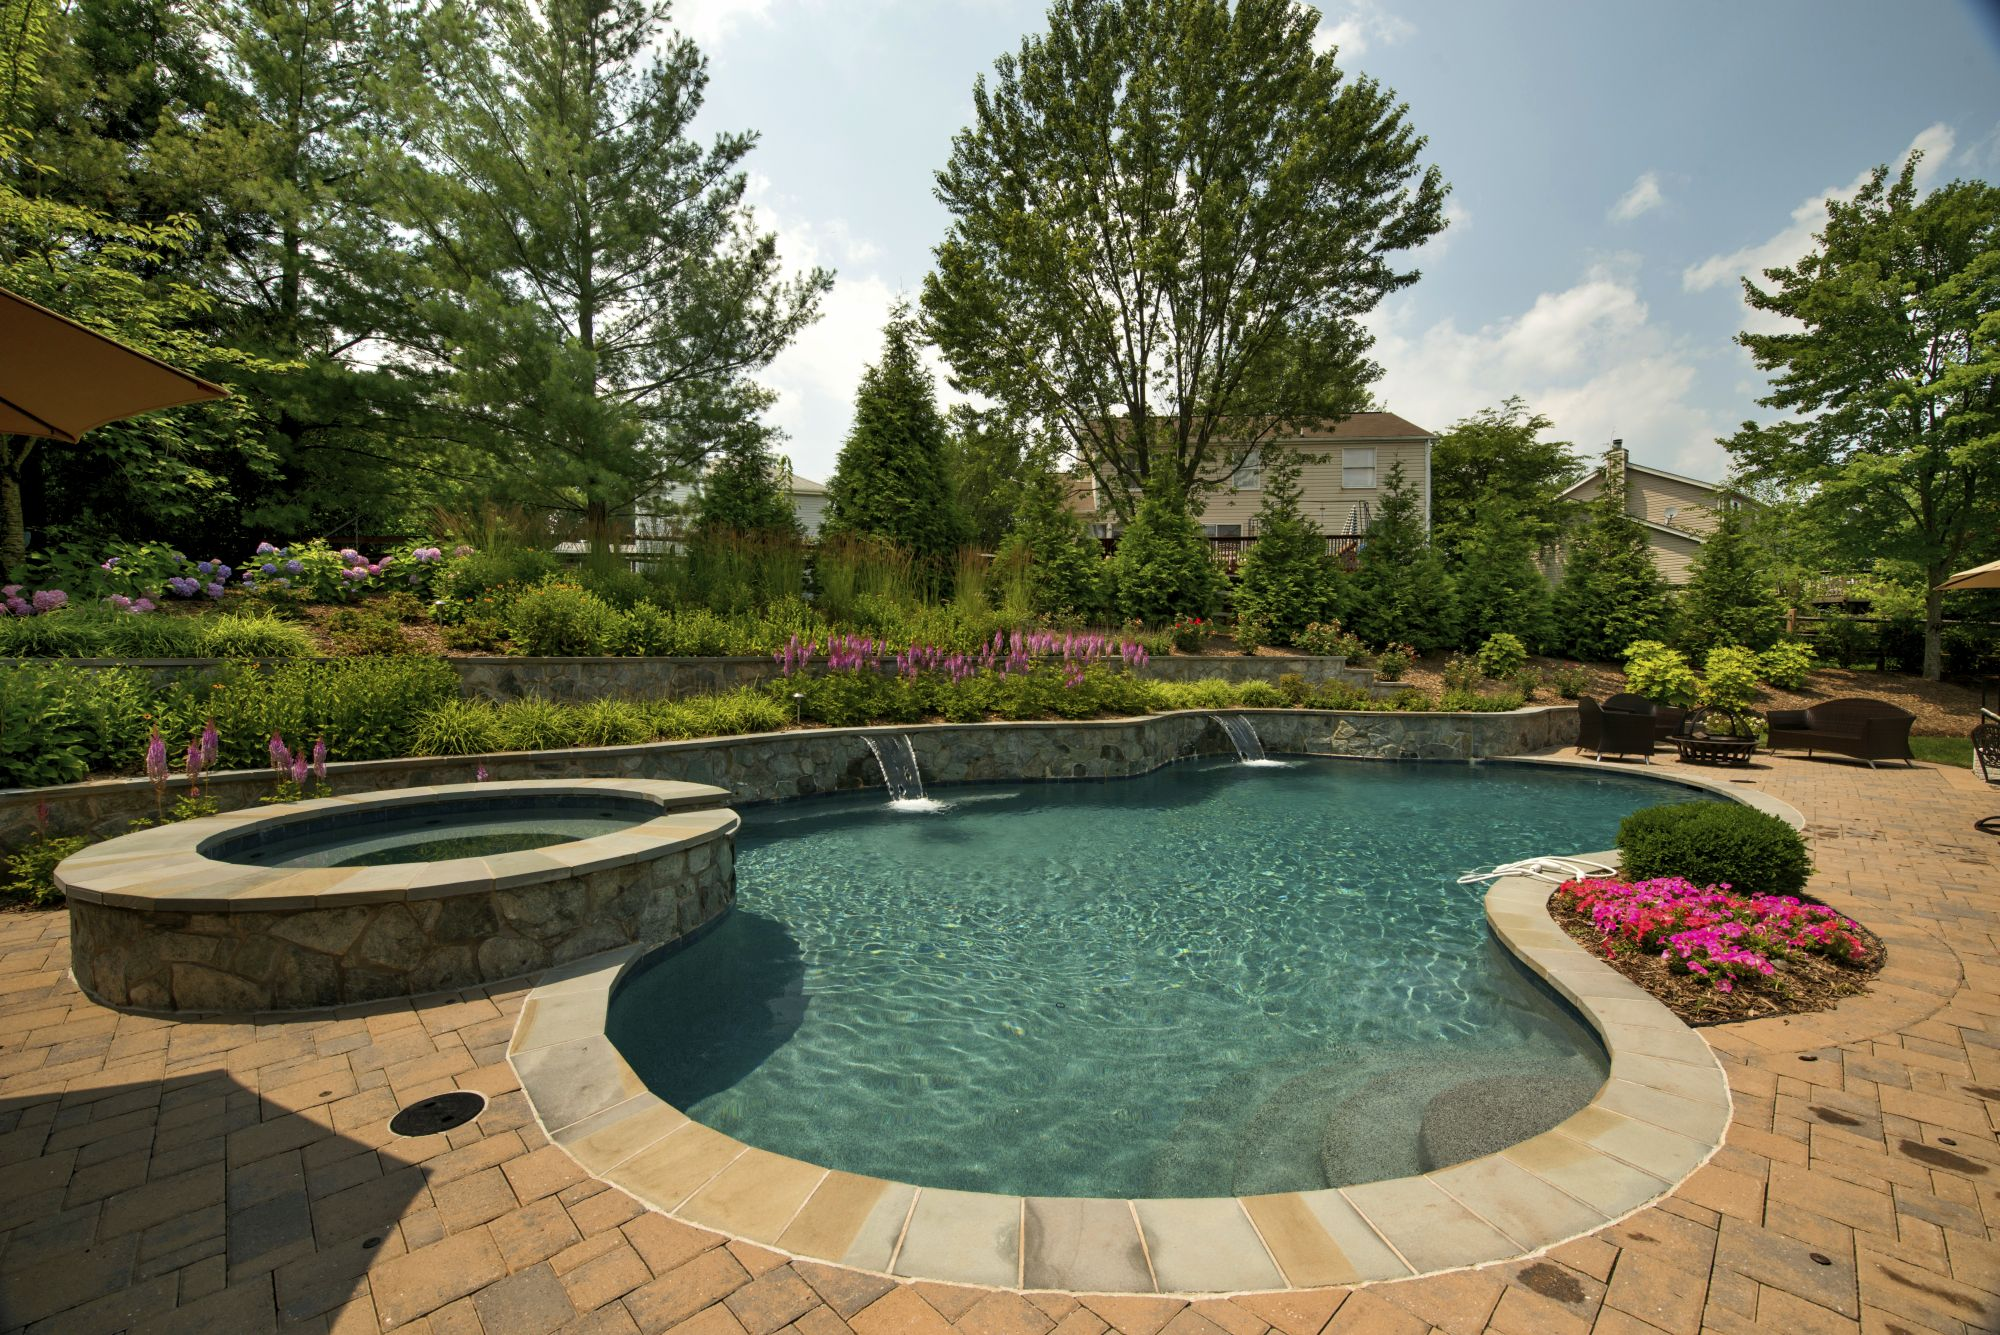 Pool with terrace walls and plantings